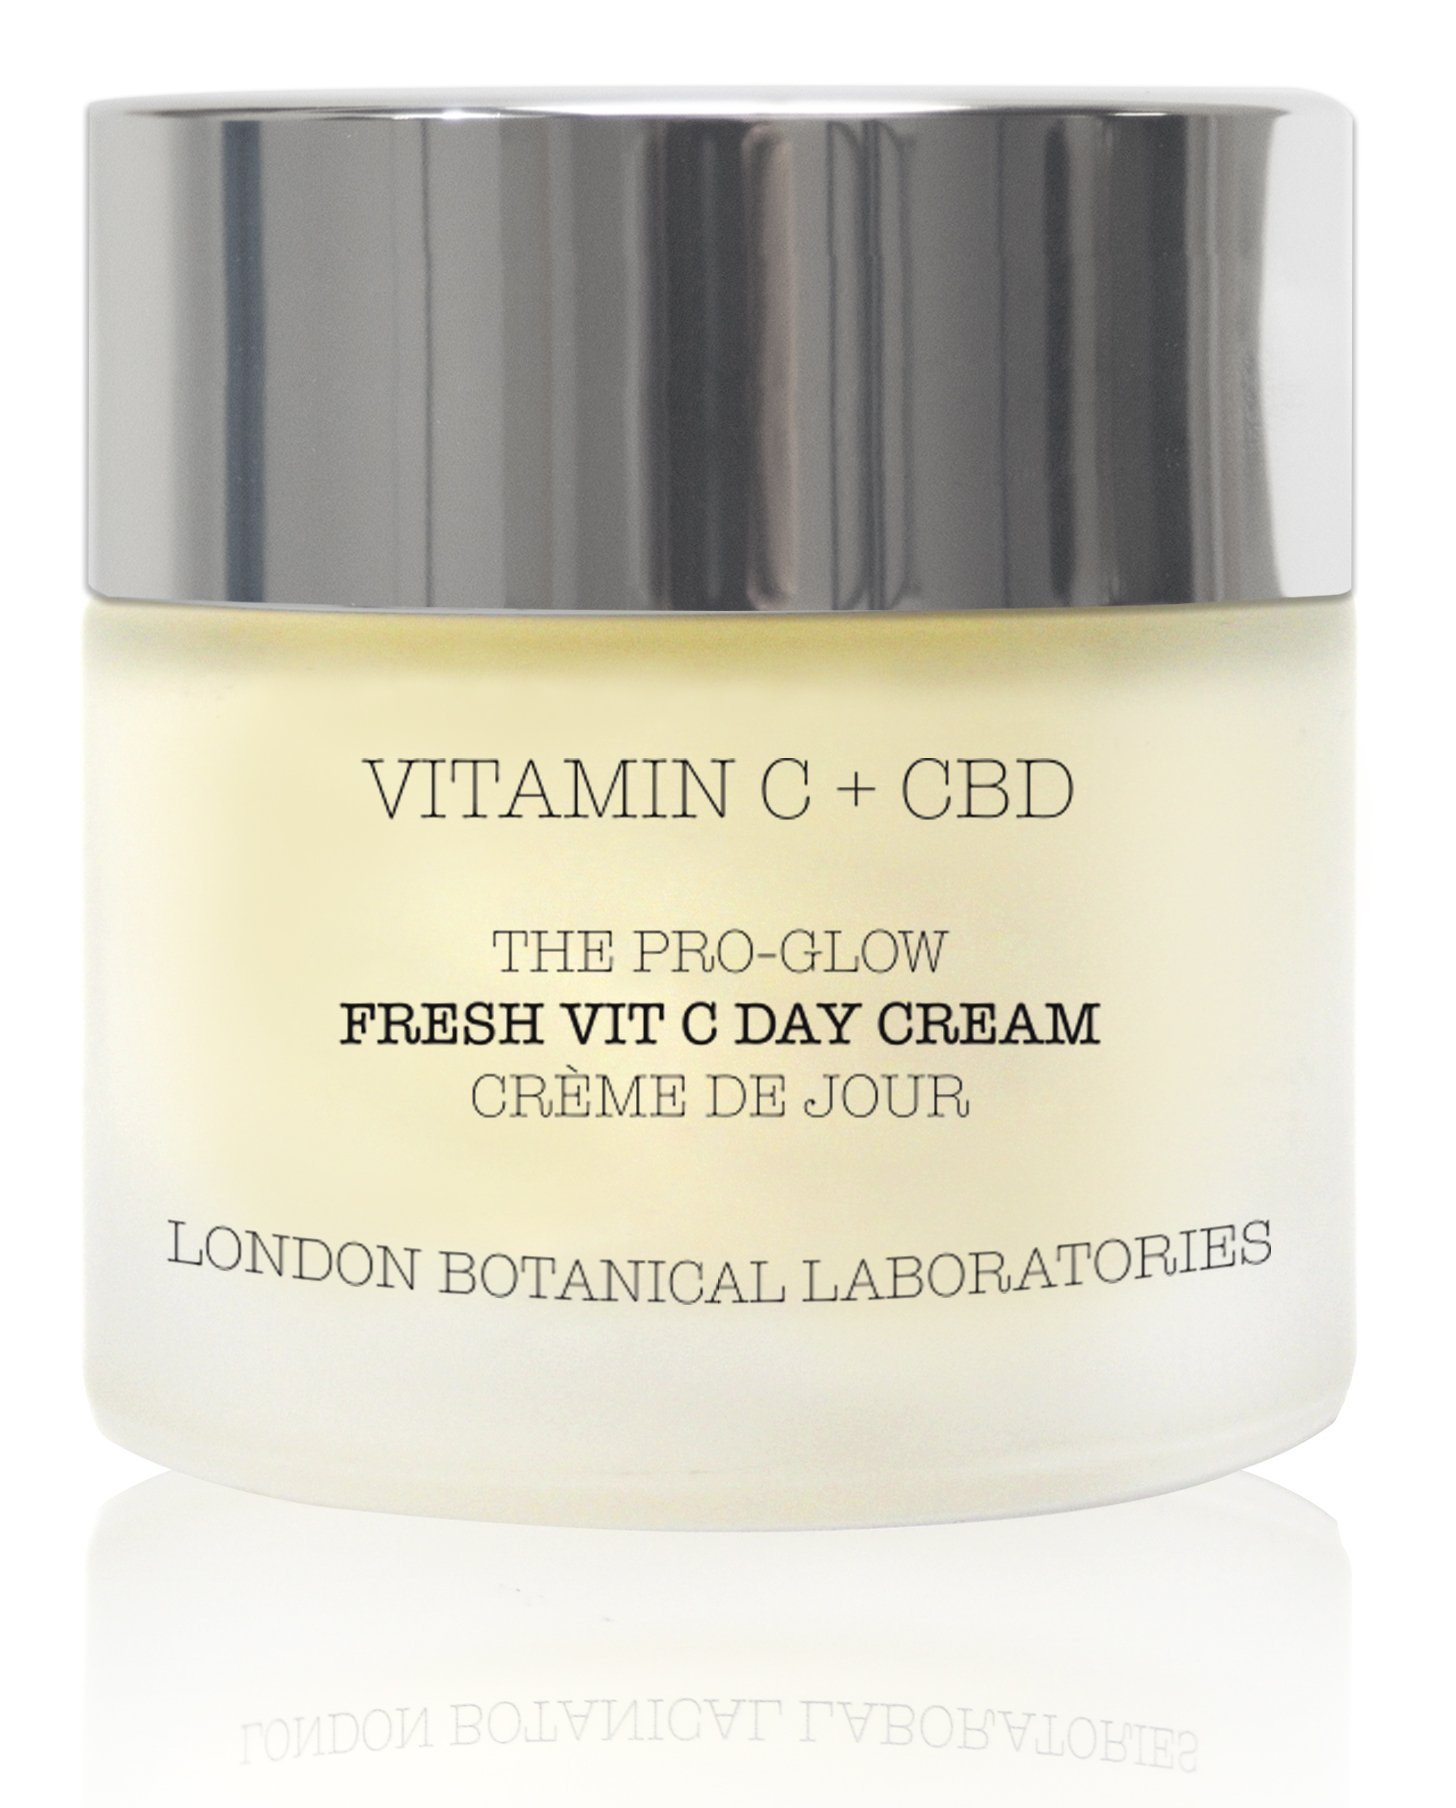 London Botanicals Laboratories Vitamin C + Cbd | The Pro-Glow Fresh Vit C Day Cream